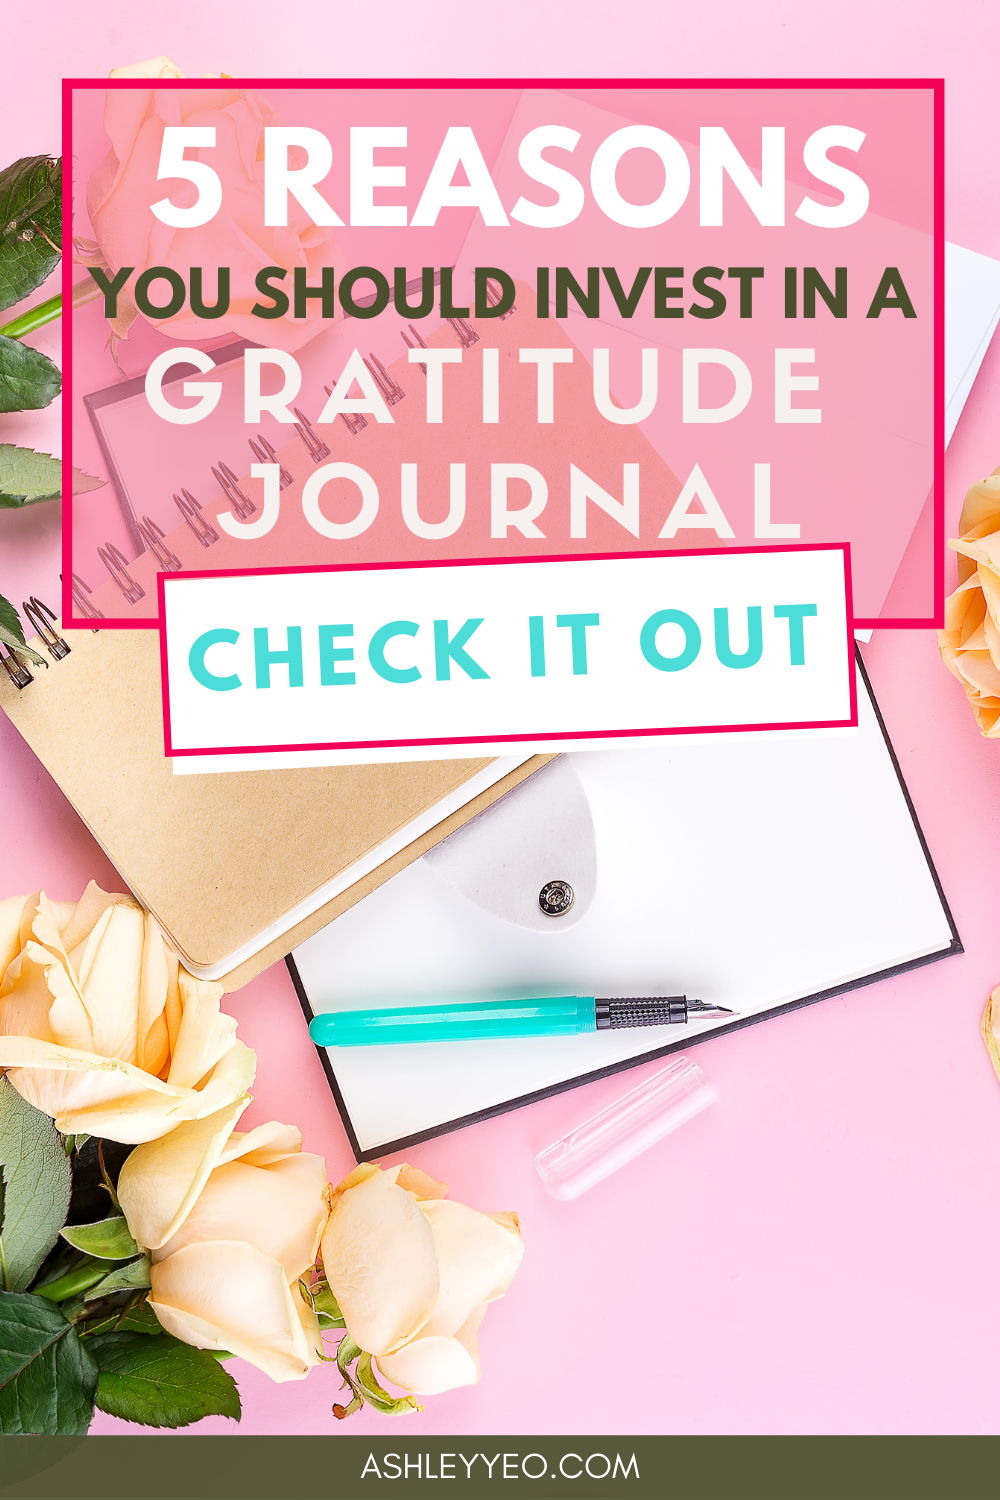 Five Reasons You Should Invest in a Gratitude Journal